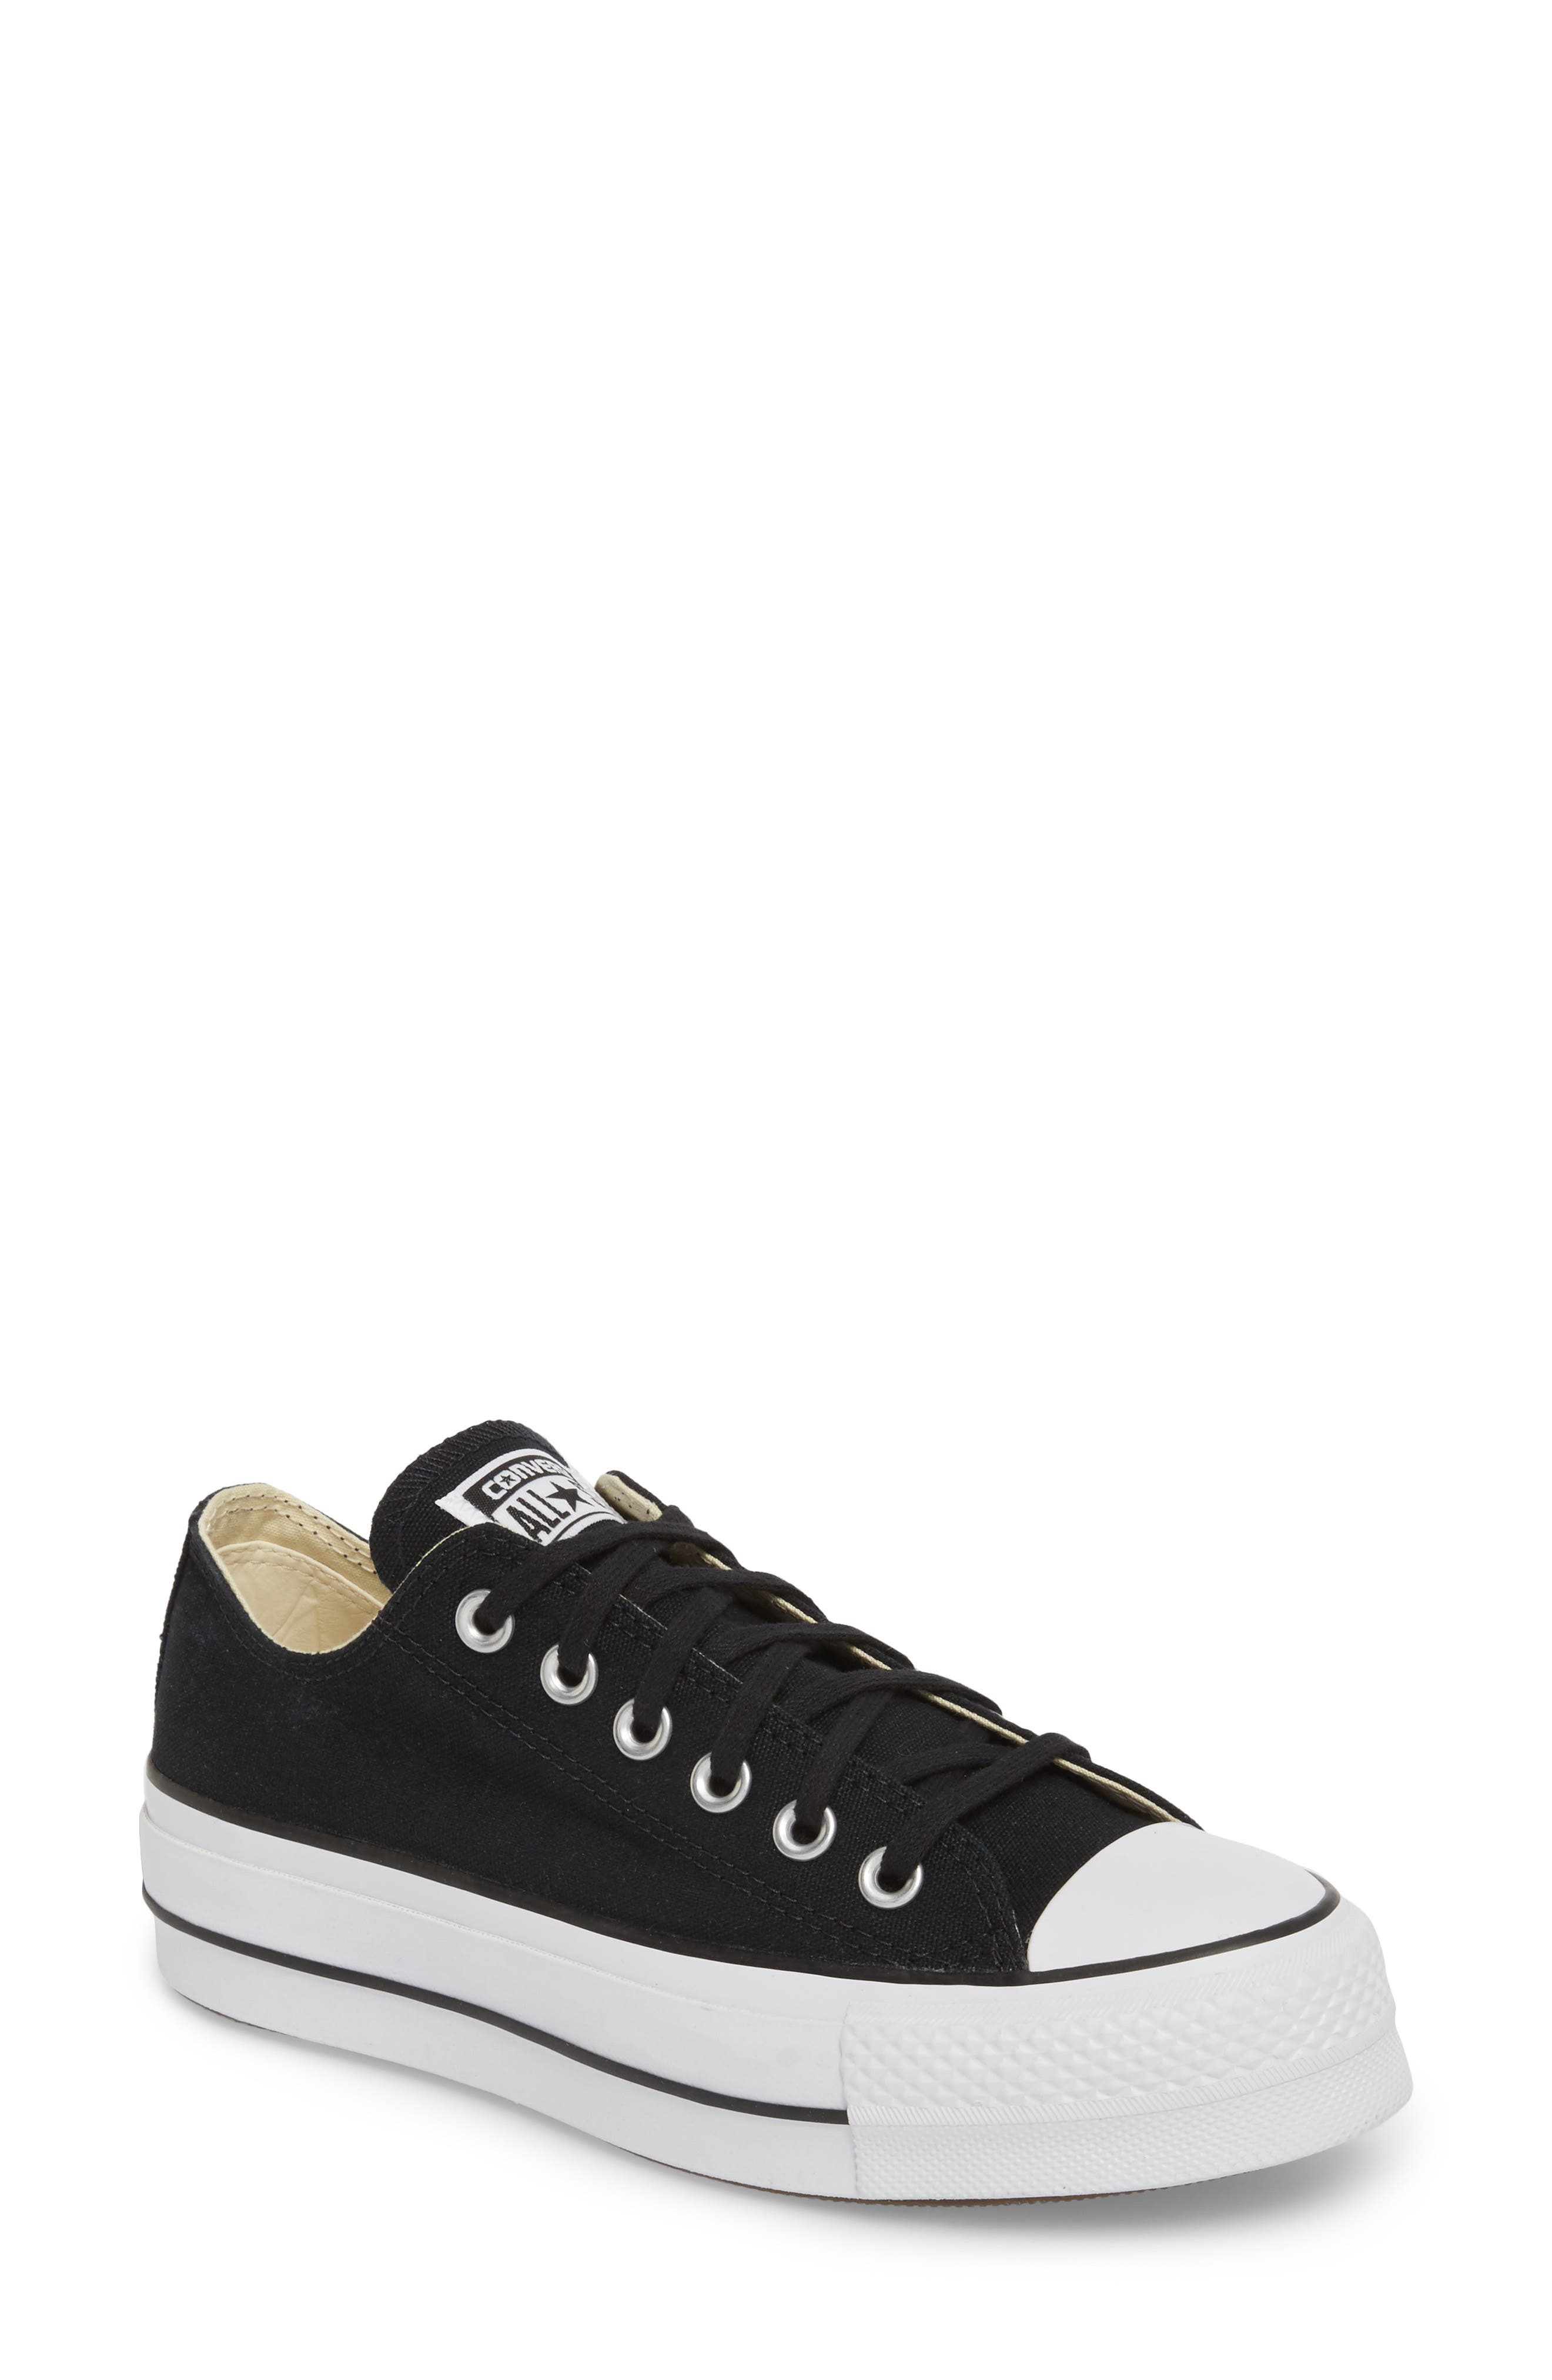 CONVERSE Chuck Taylor<sup>®</sup> All Star<sup>®</sup> Platform Sneaker, Main, color, BLACK/ WHITE/ WHITE